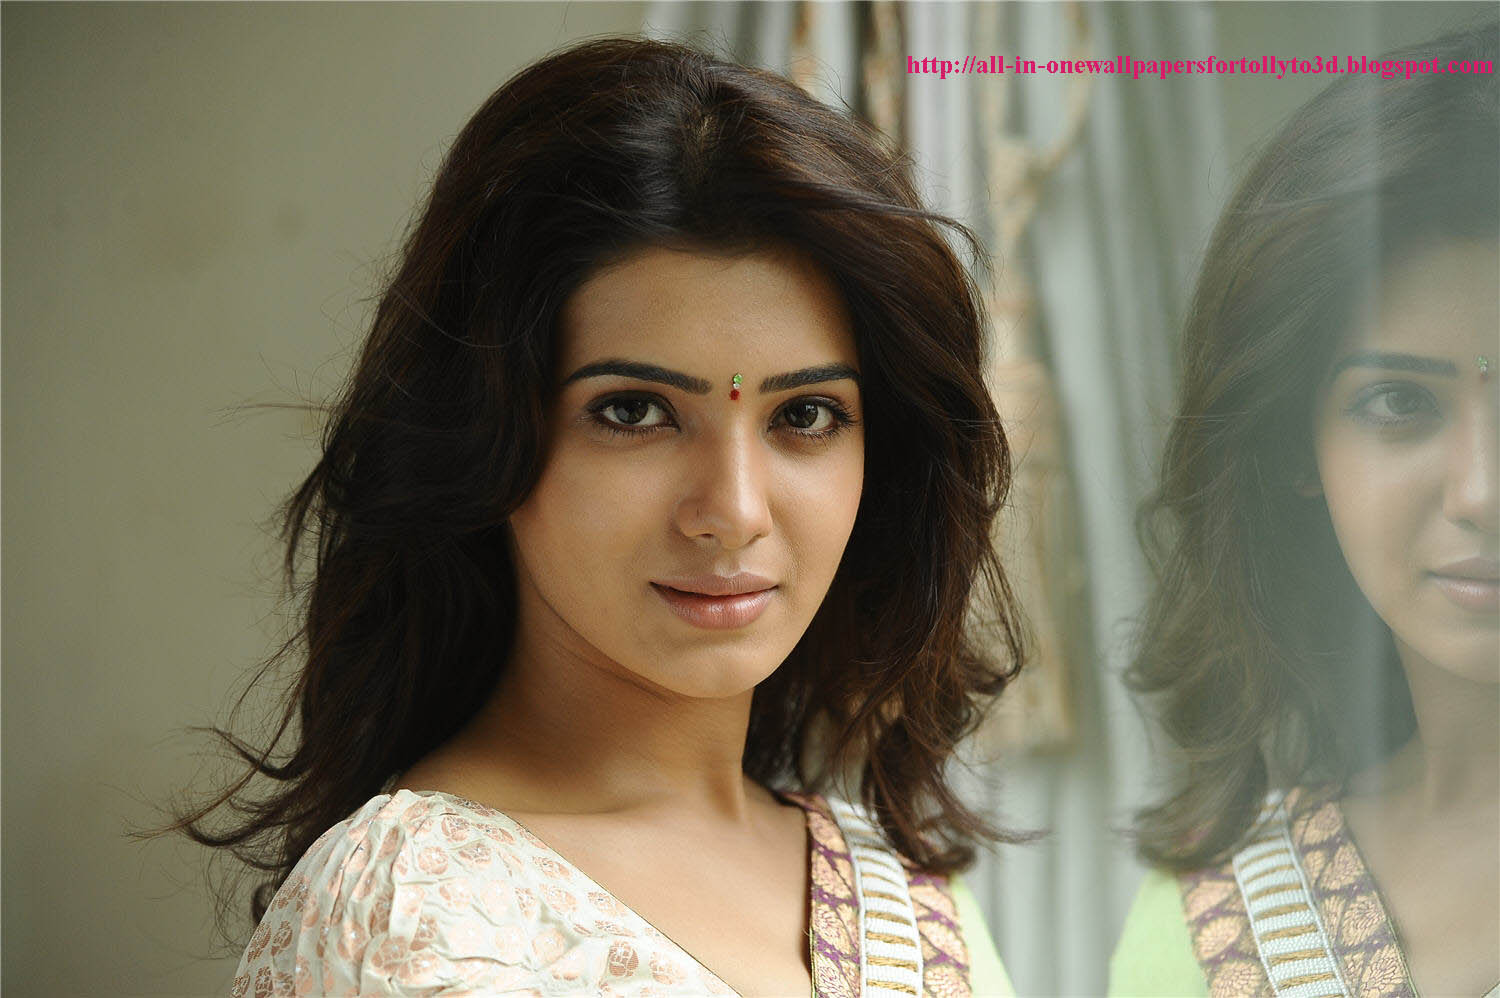 all-in-one wallpapers: cute telugu actress samantha ruth prabhu hd